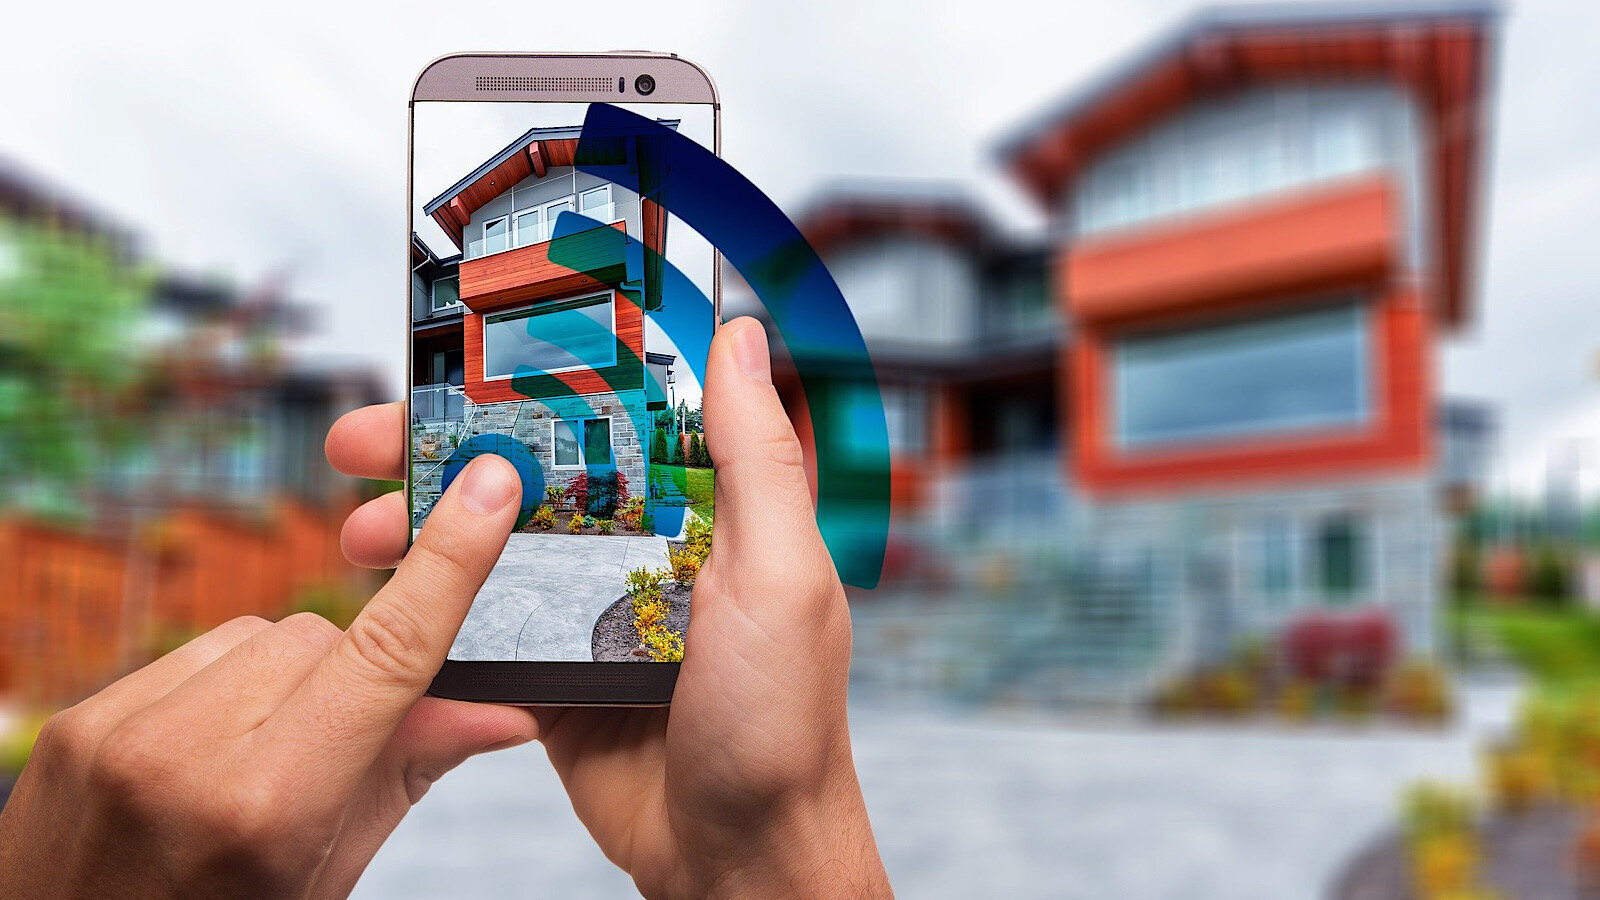 Two hands hold a smart phone, which is taking a photo of a house.